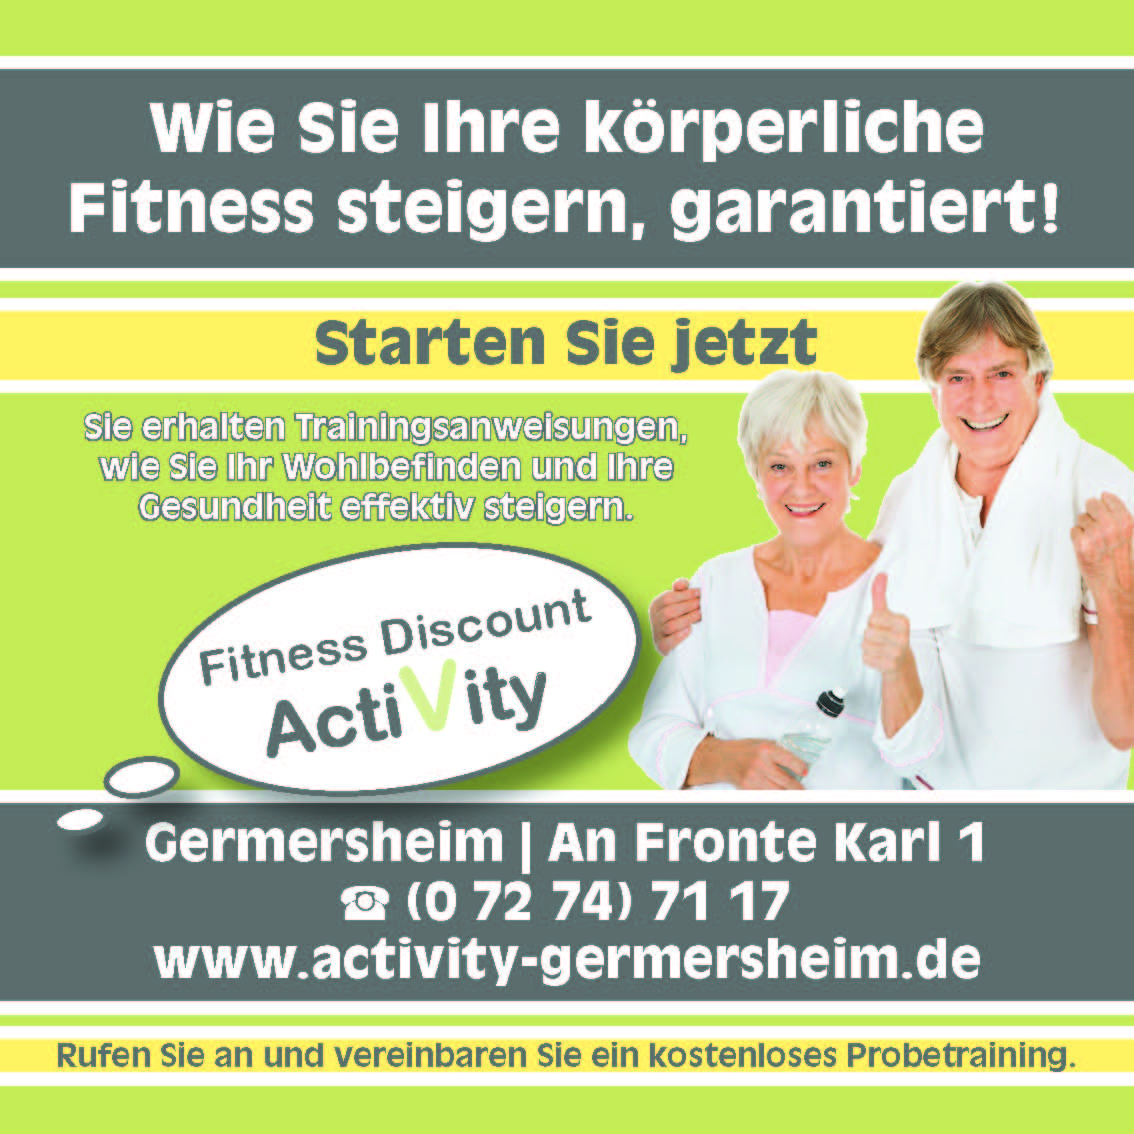 Fitness Discount ActiVity, Germersheim